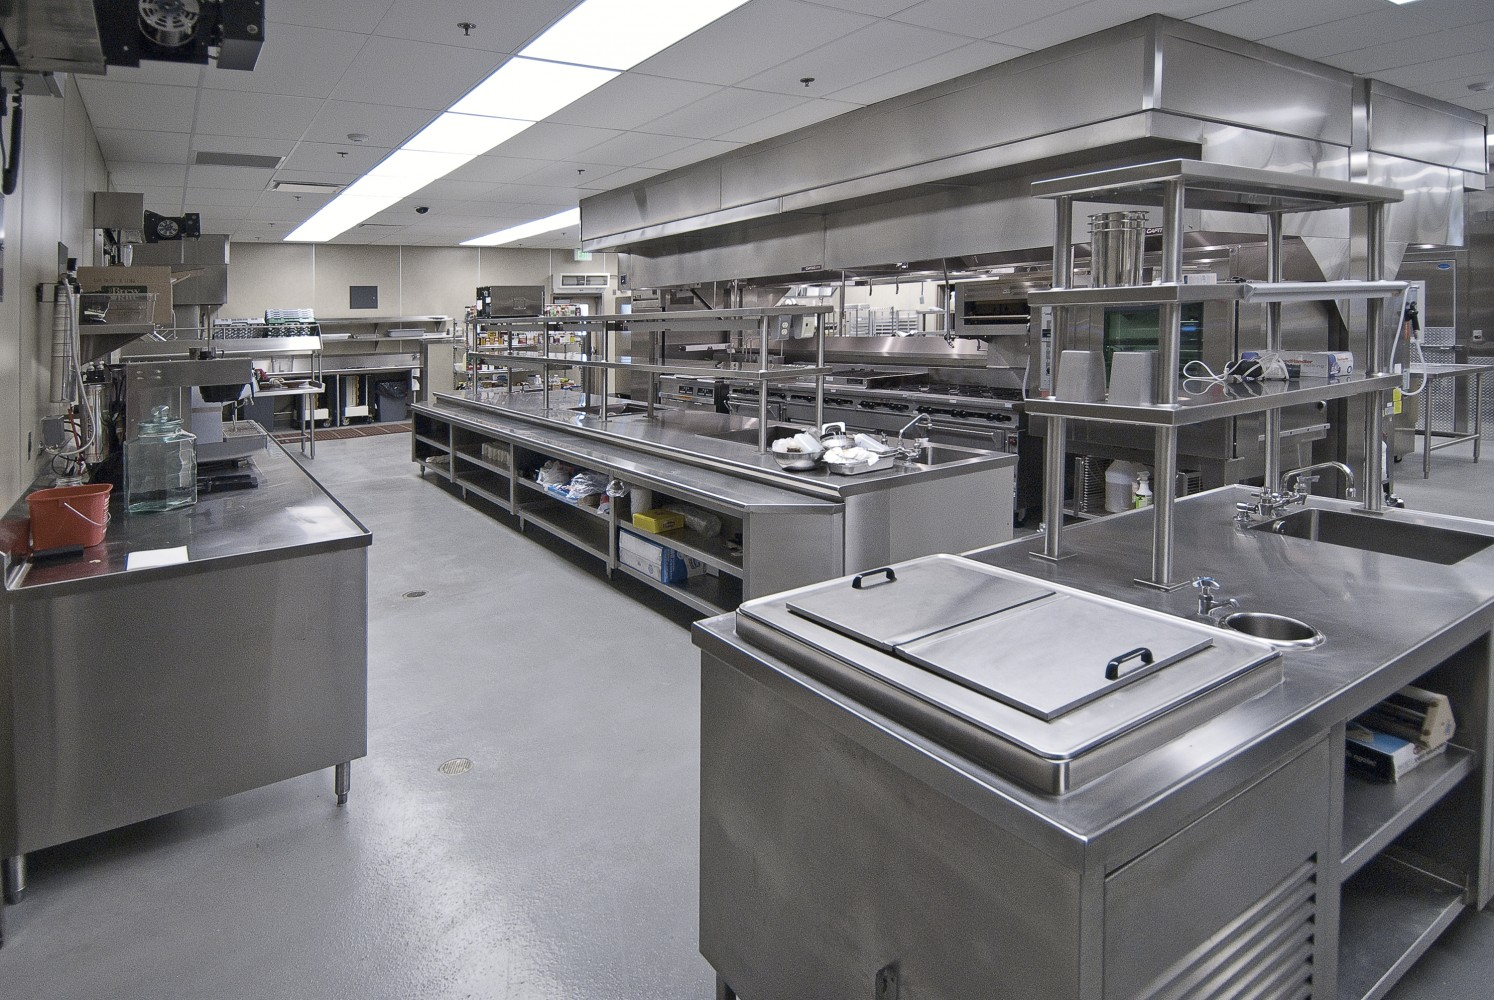 commercial kitchen design ppt restaurant equipment amp kitchen supplies for in utica ny 375